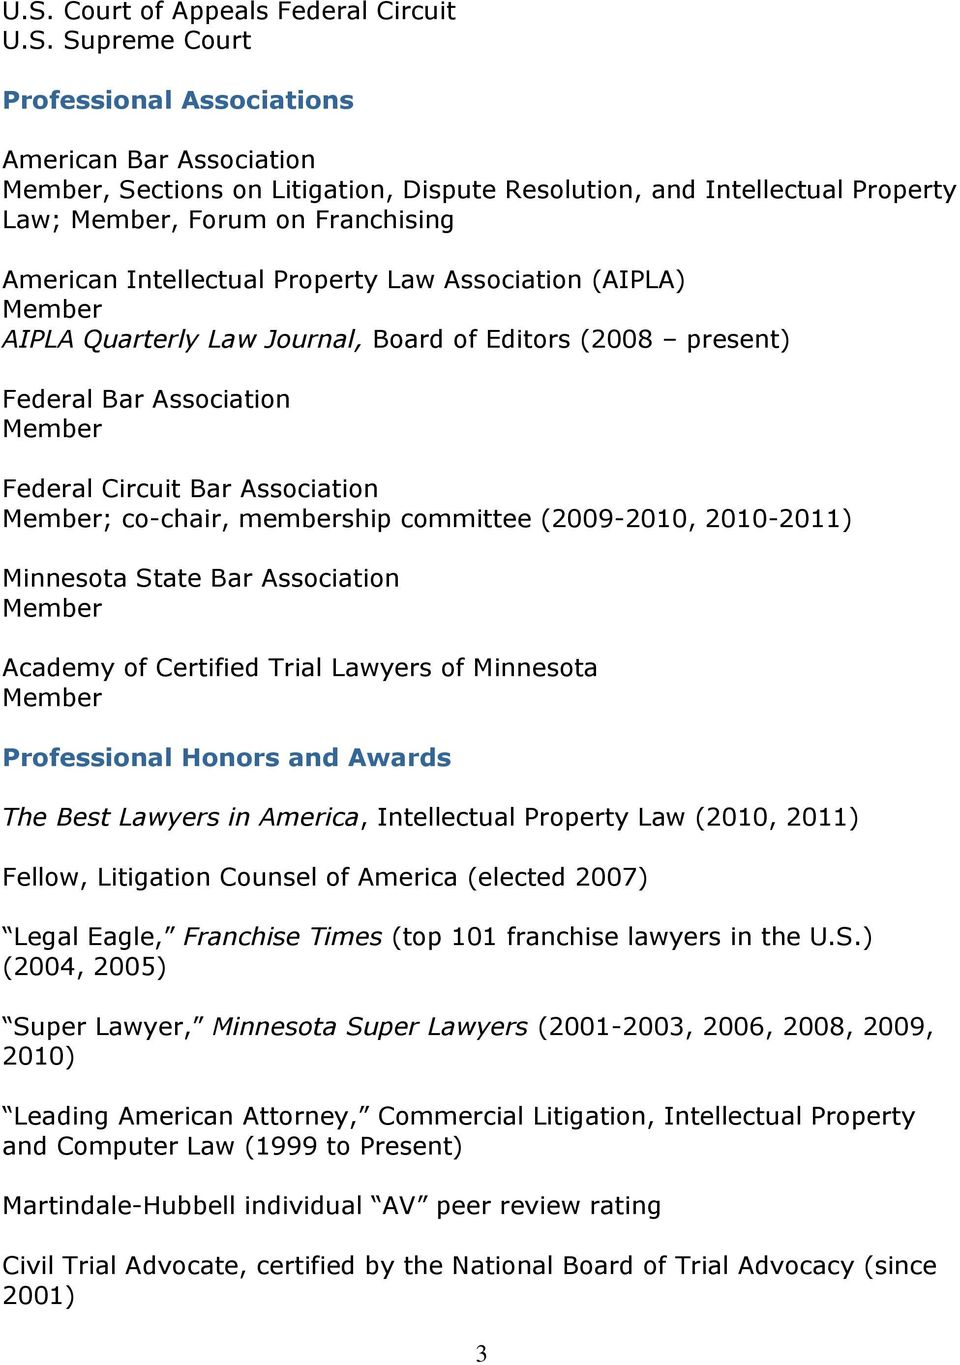 Association Member; co-chair, membership committee (2009-2010, 2010-2011) Minnesota State Bar Association Member Academy of Certified Trial Lawyers of Minnesota Member Professional Honors and Awards